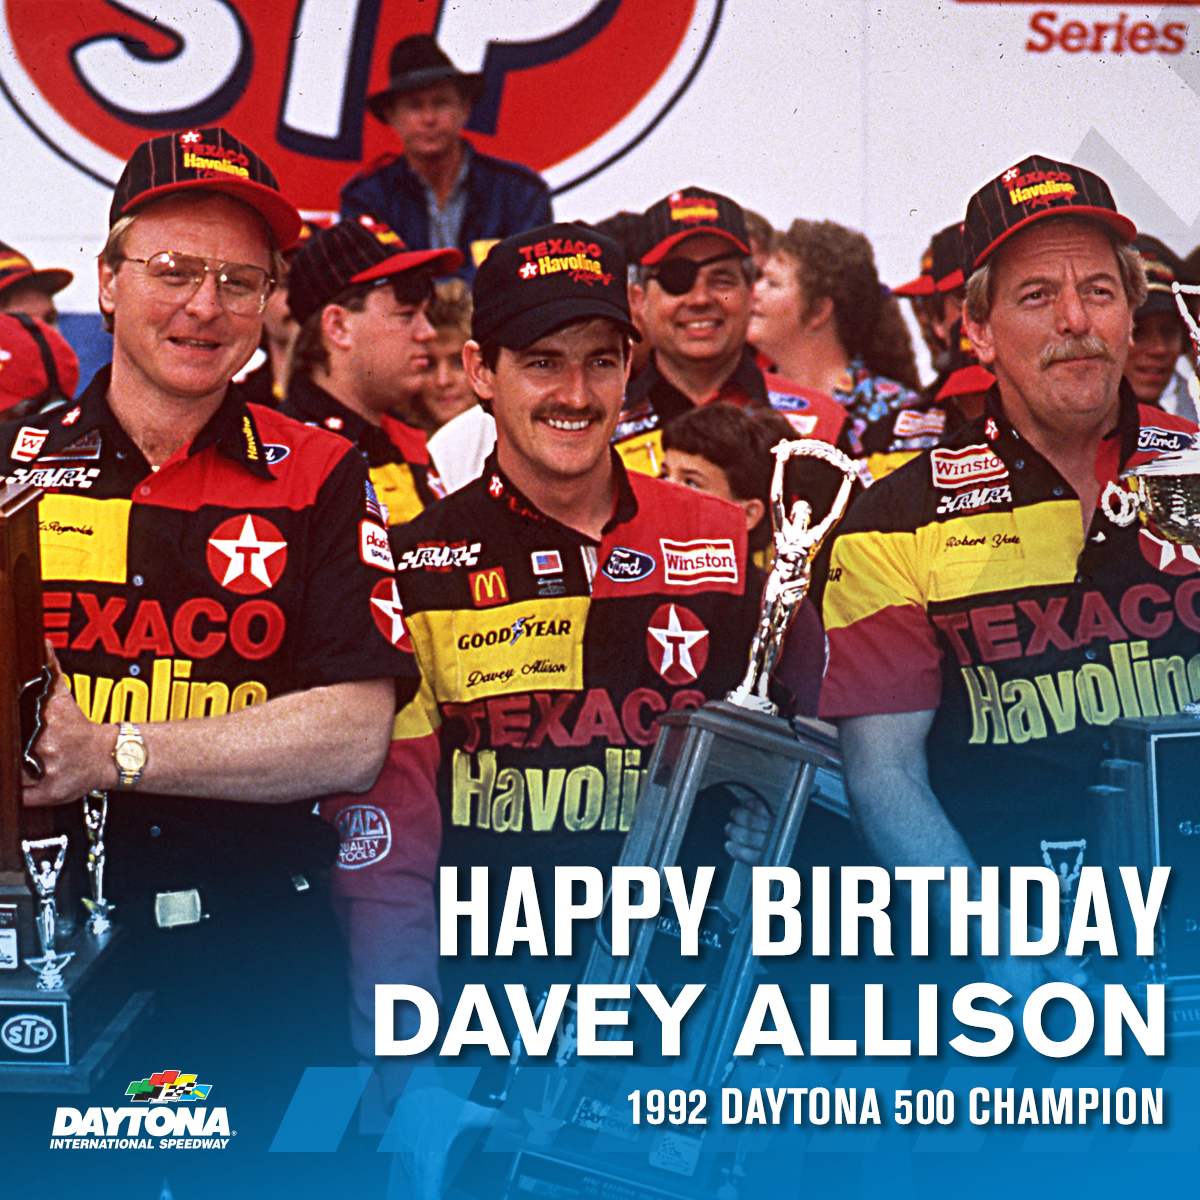 Today we remember 1992 #DAYTONA500 Champion Davey Allison on what would have been his 59th birthday.